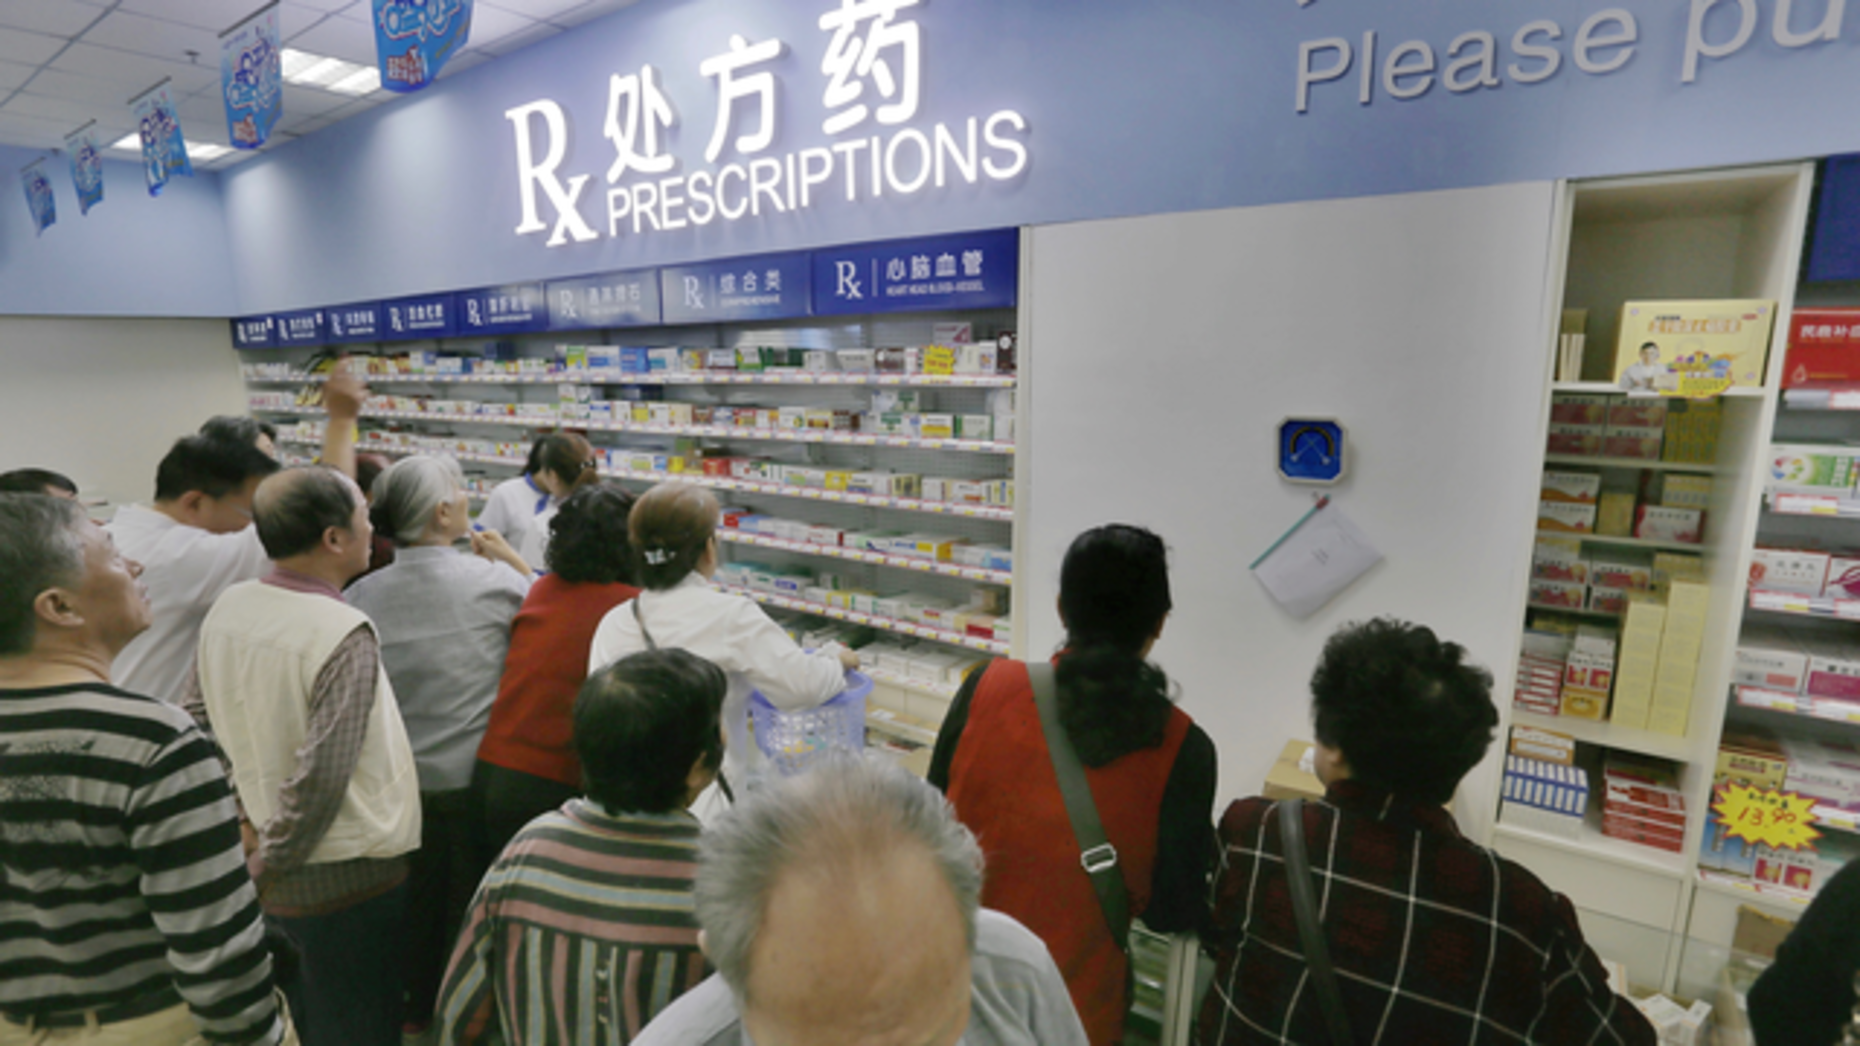 Customers picking up prescriptions at a pharmacy in Yichang, central China's Hubei province, in 2014. Photo by AP